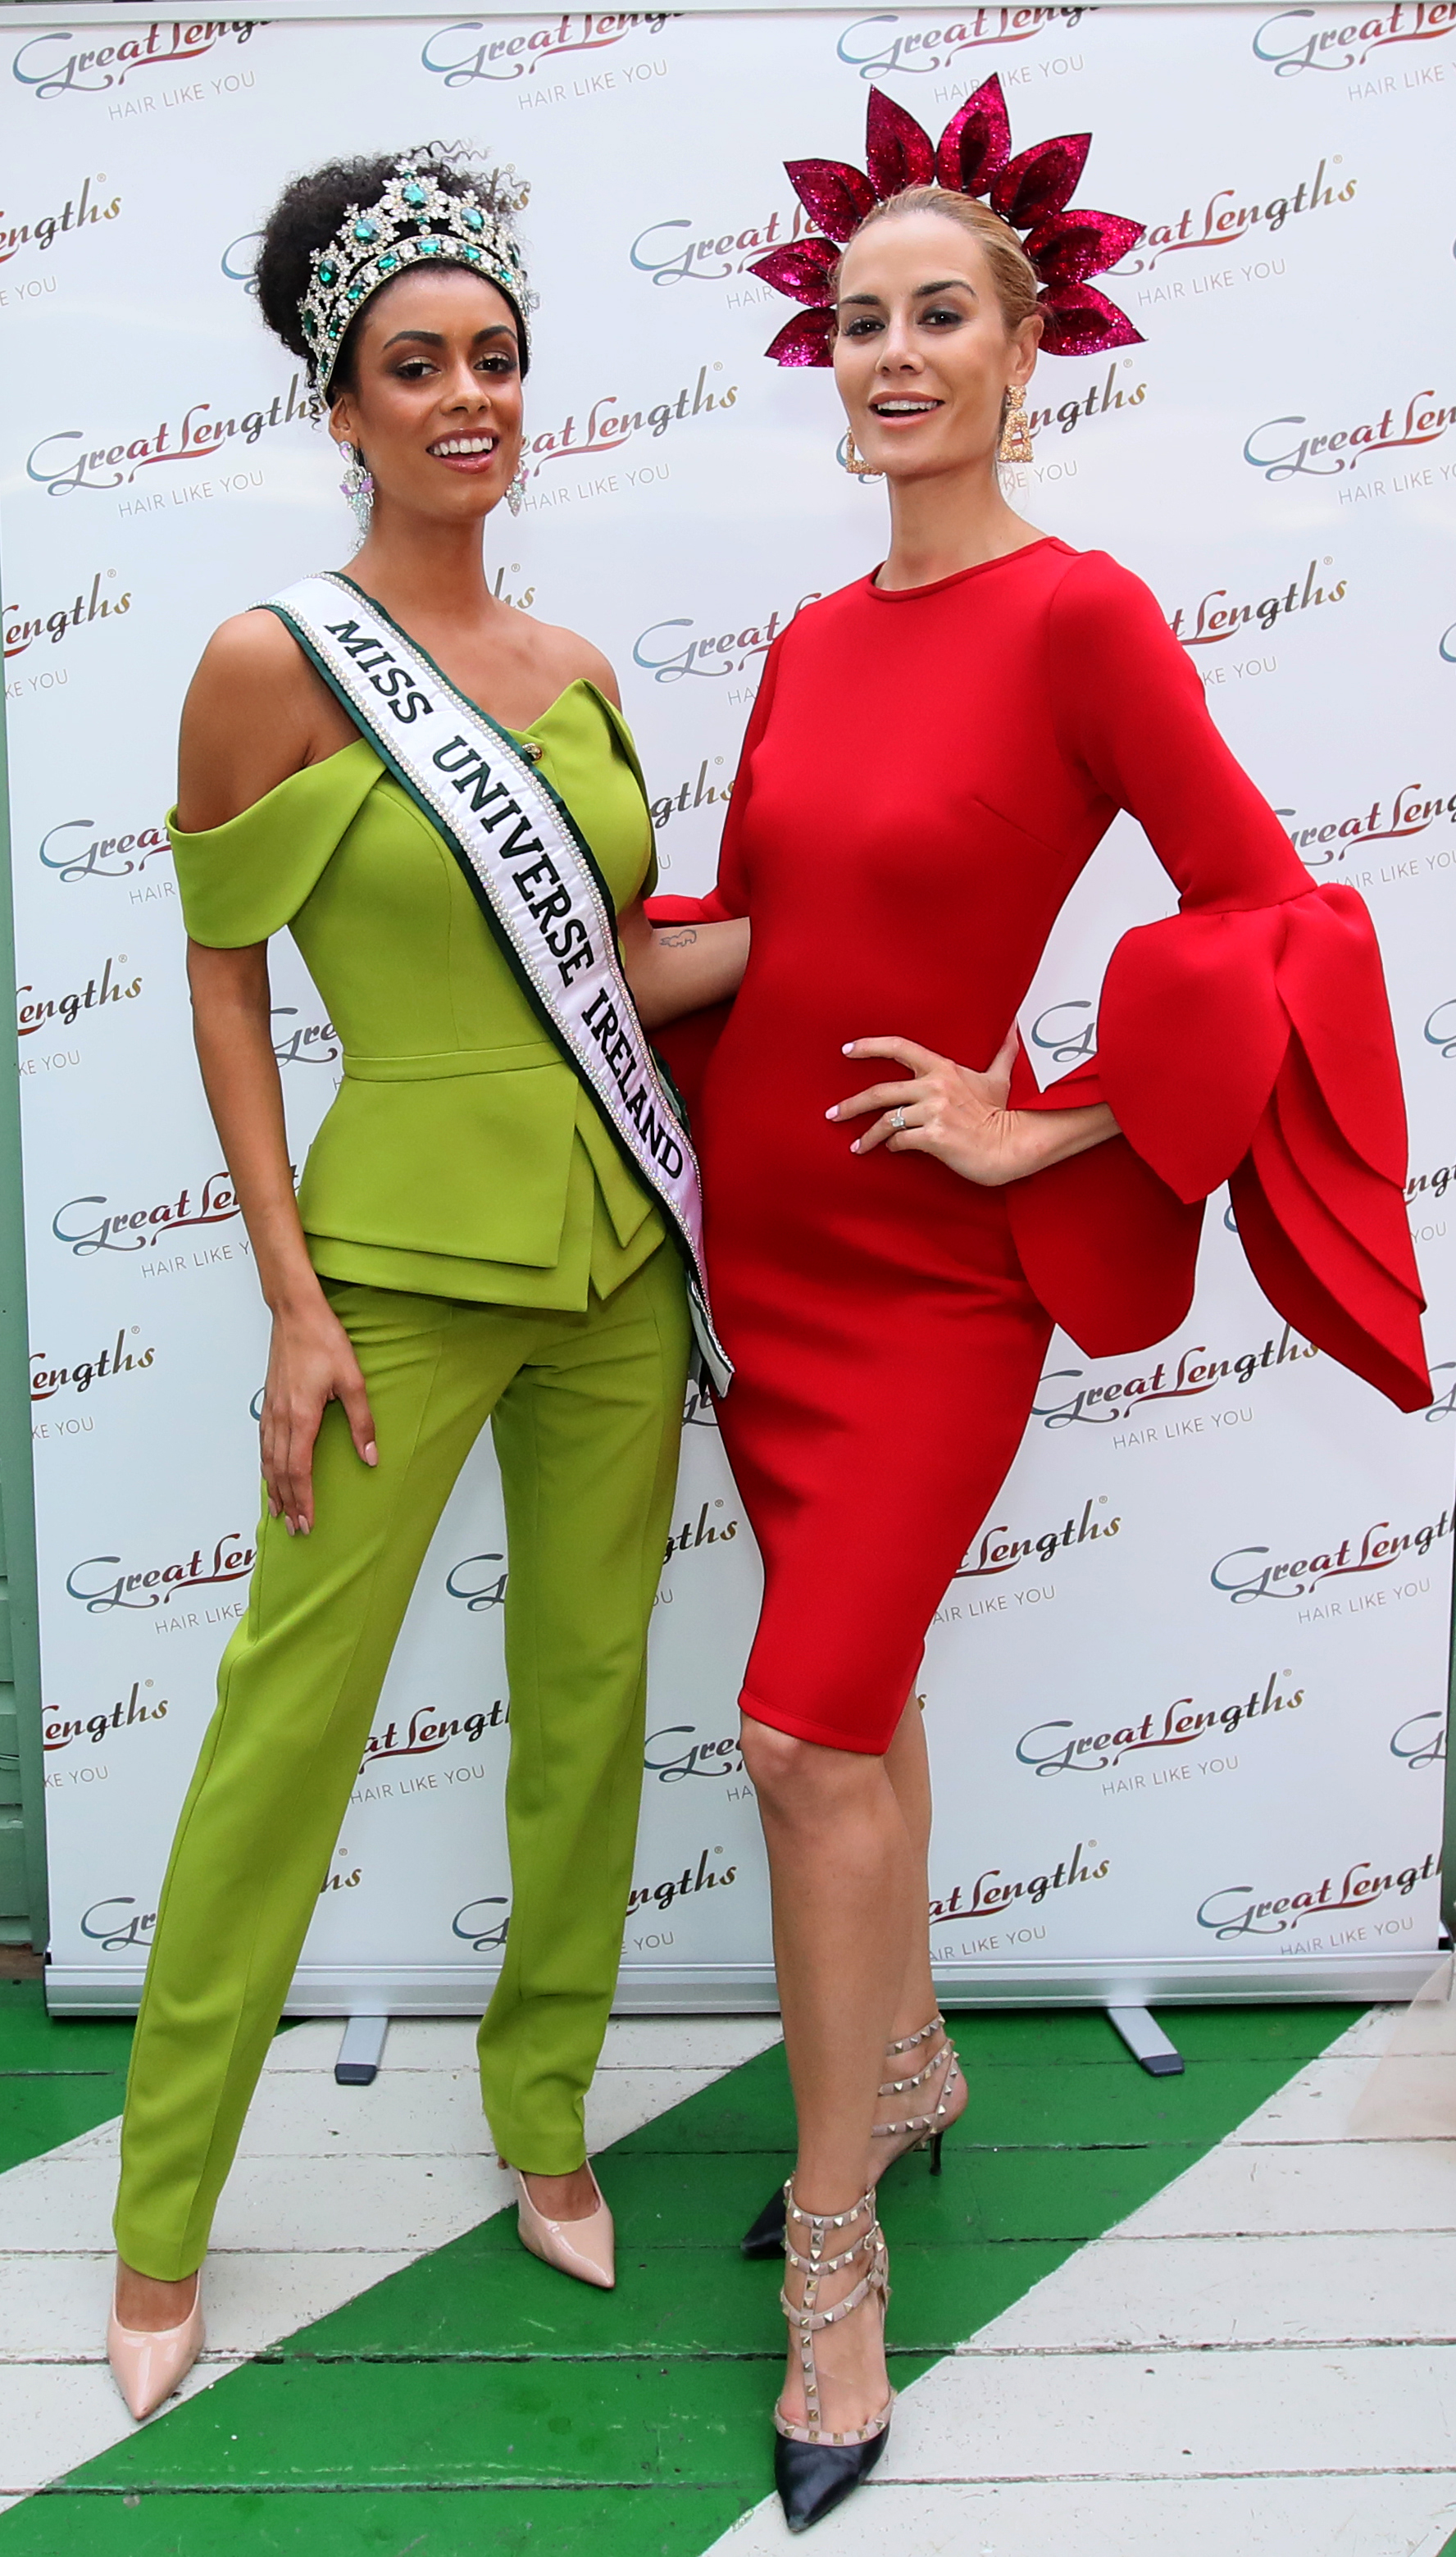 Pictured last night at the Great Lengths – The Mane Event at HOUSE Dublin, Leeson Street after the Dublin Horse Show are, from left, Miss Universe Ireland Fionnghuala O'Reilly and Britney Mason. PHOTO: Mark Stedman